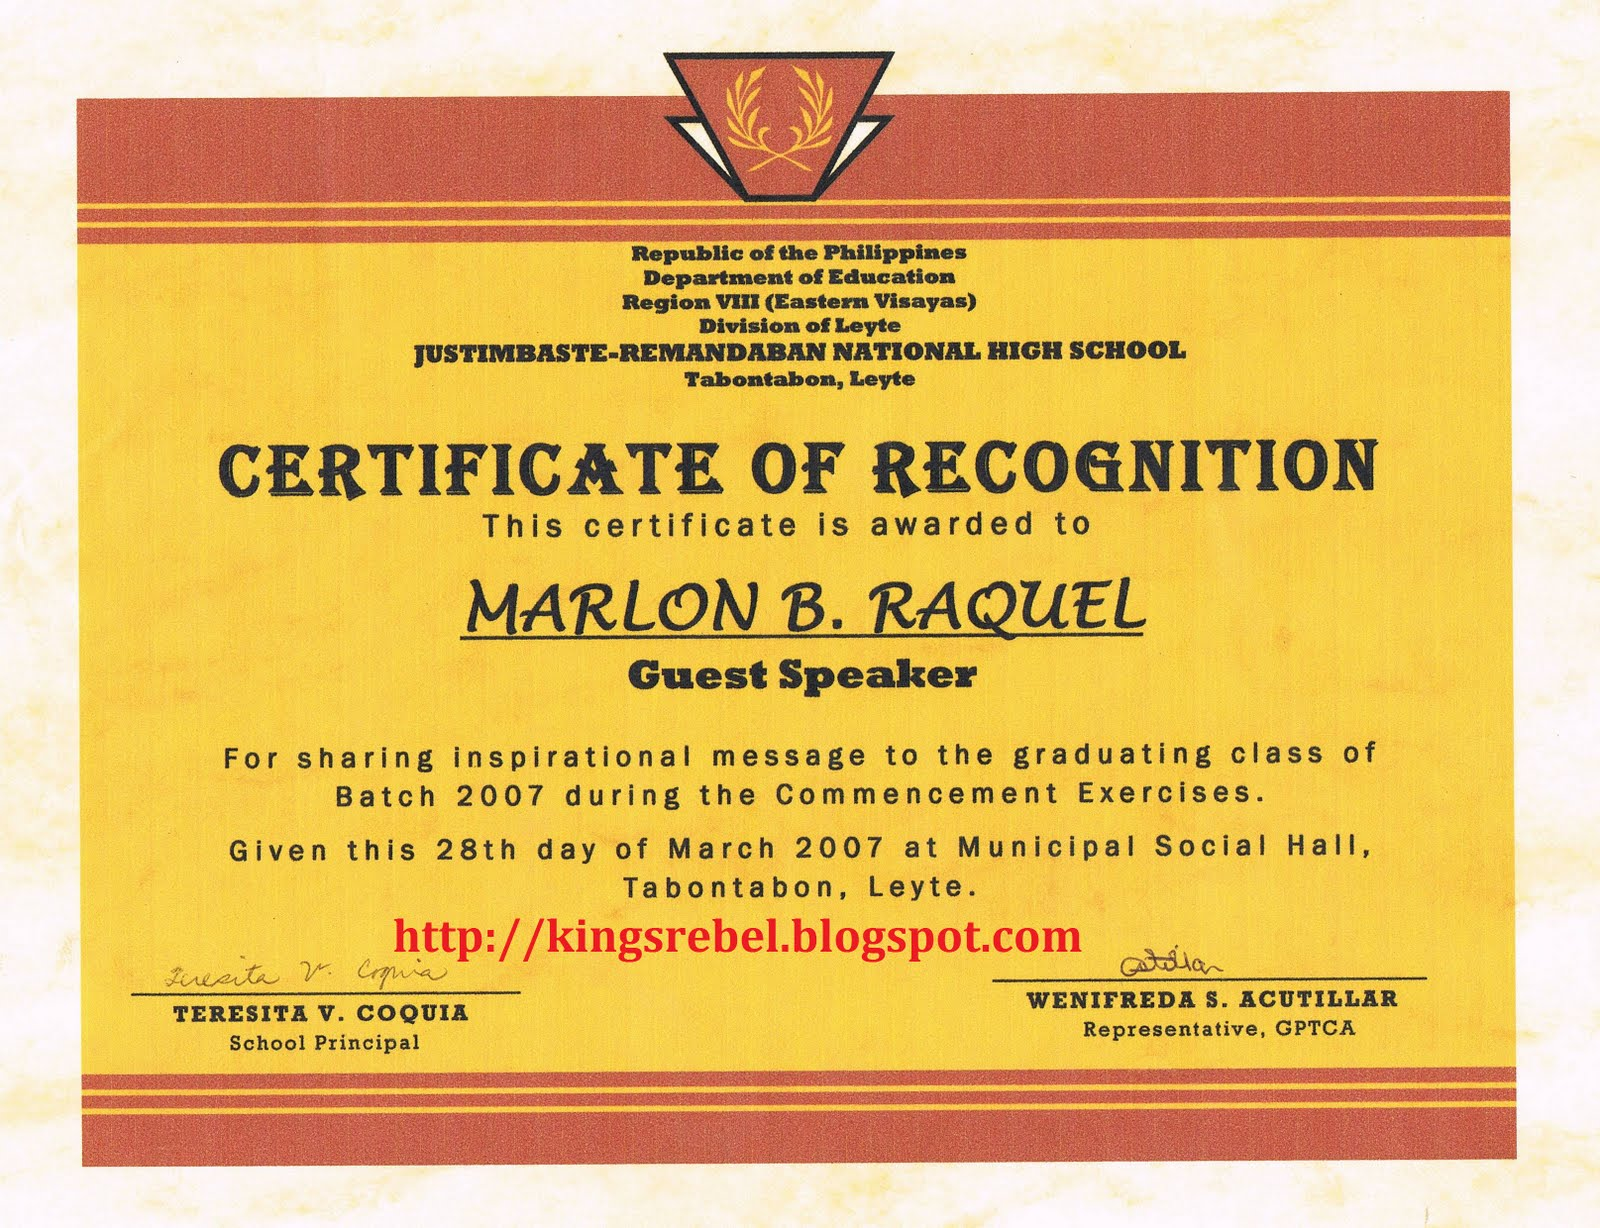 example of certificate of recognition  Tidbits and Bytes: Example of Certificate of Appreciation - Guest ...